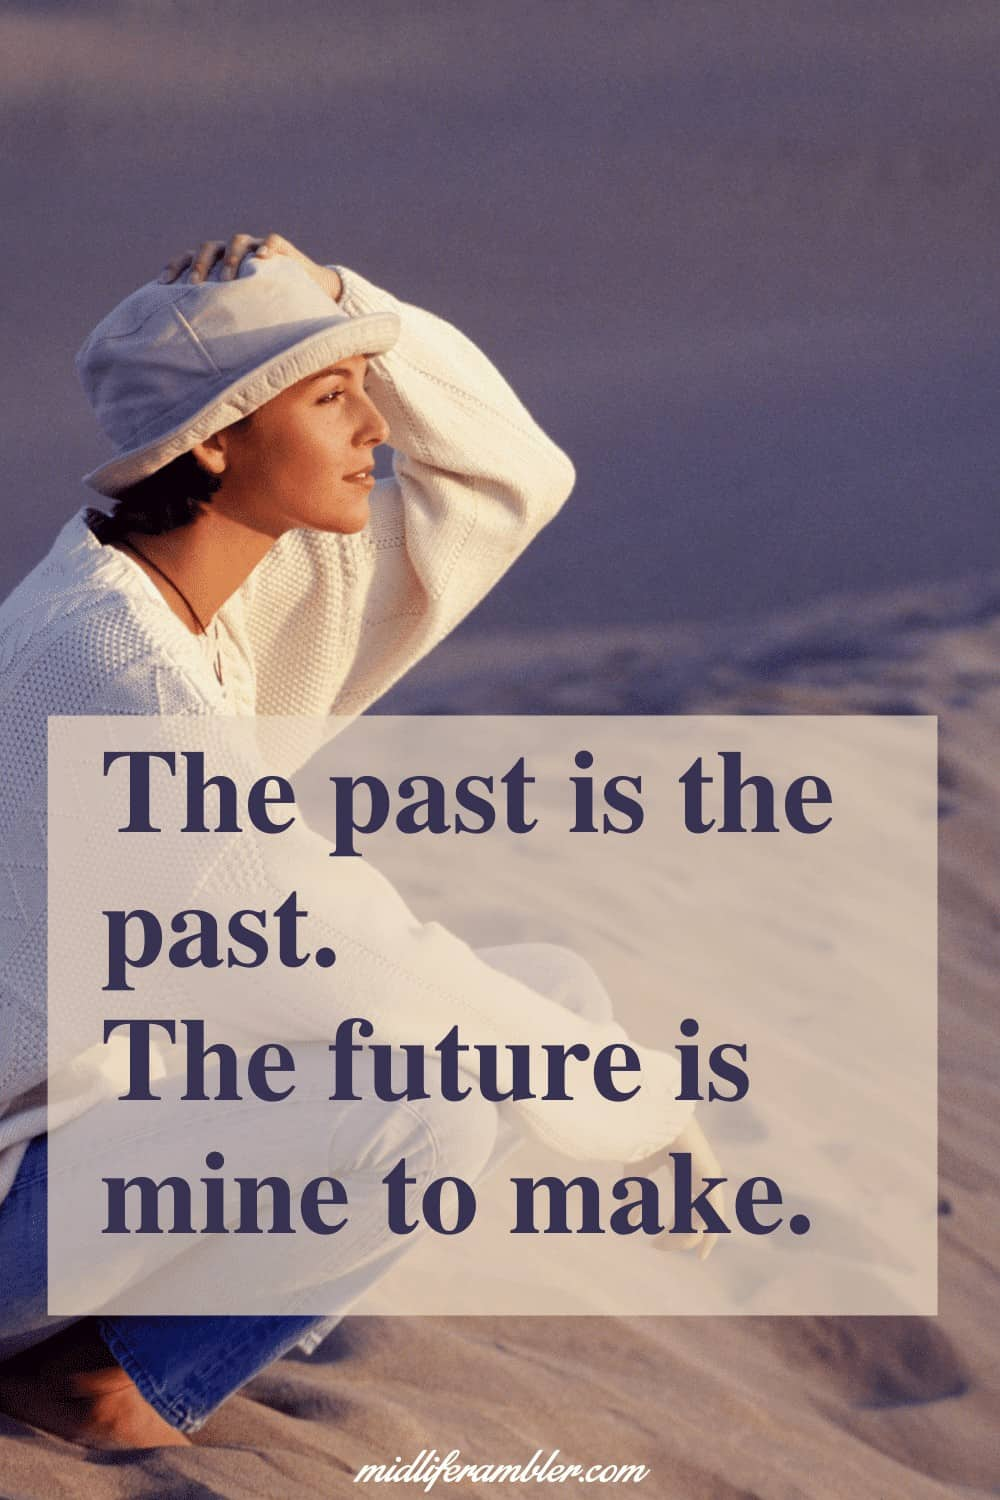 Affirmations for Self-Compassion - The past is the past. The future is mine to make.